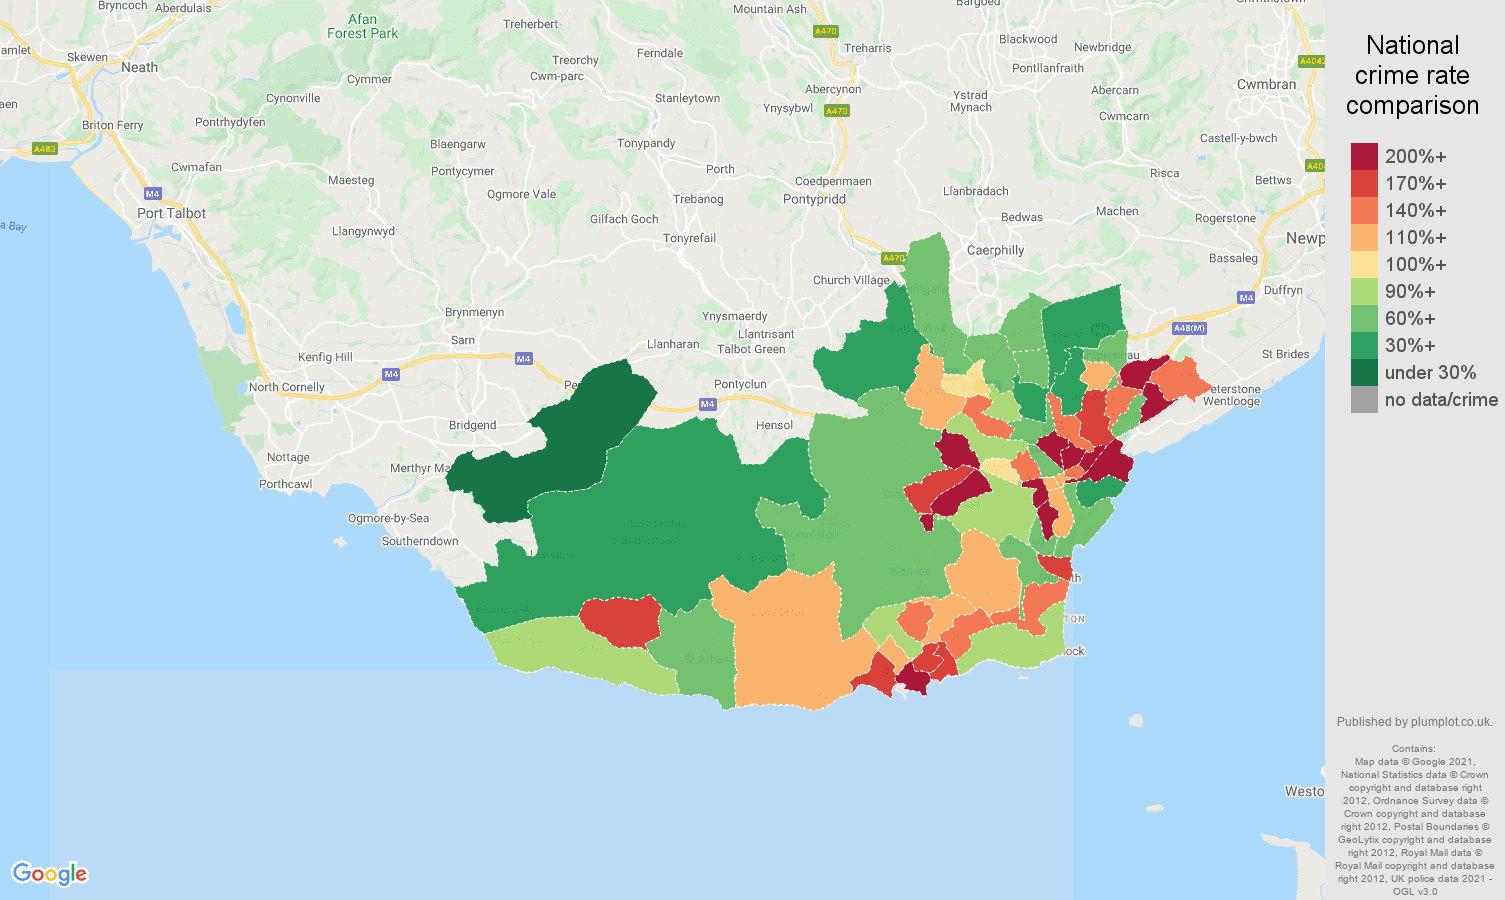 South Glamorgan antisocial behaviour crime rate comparison map